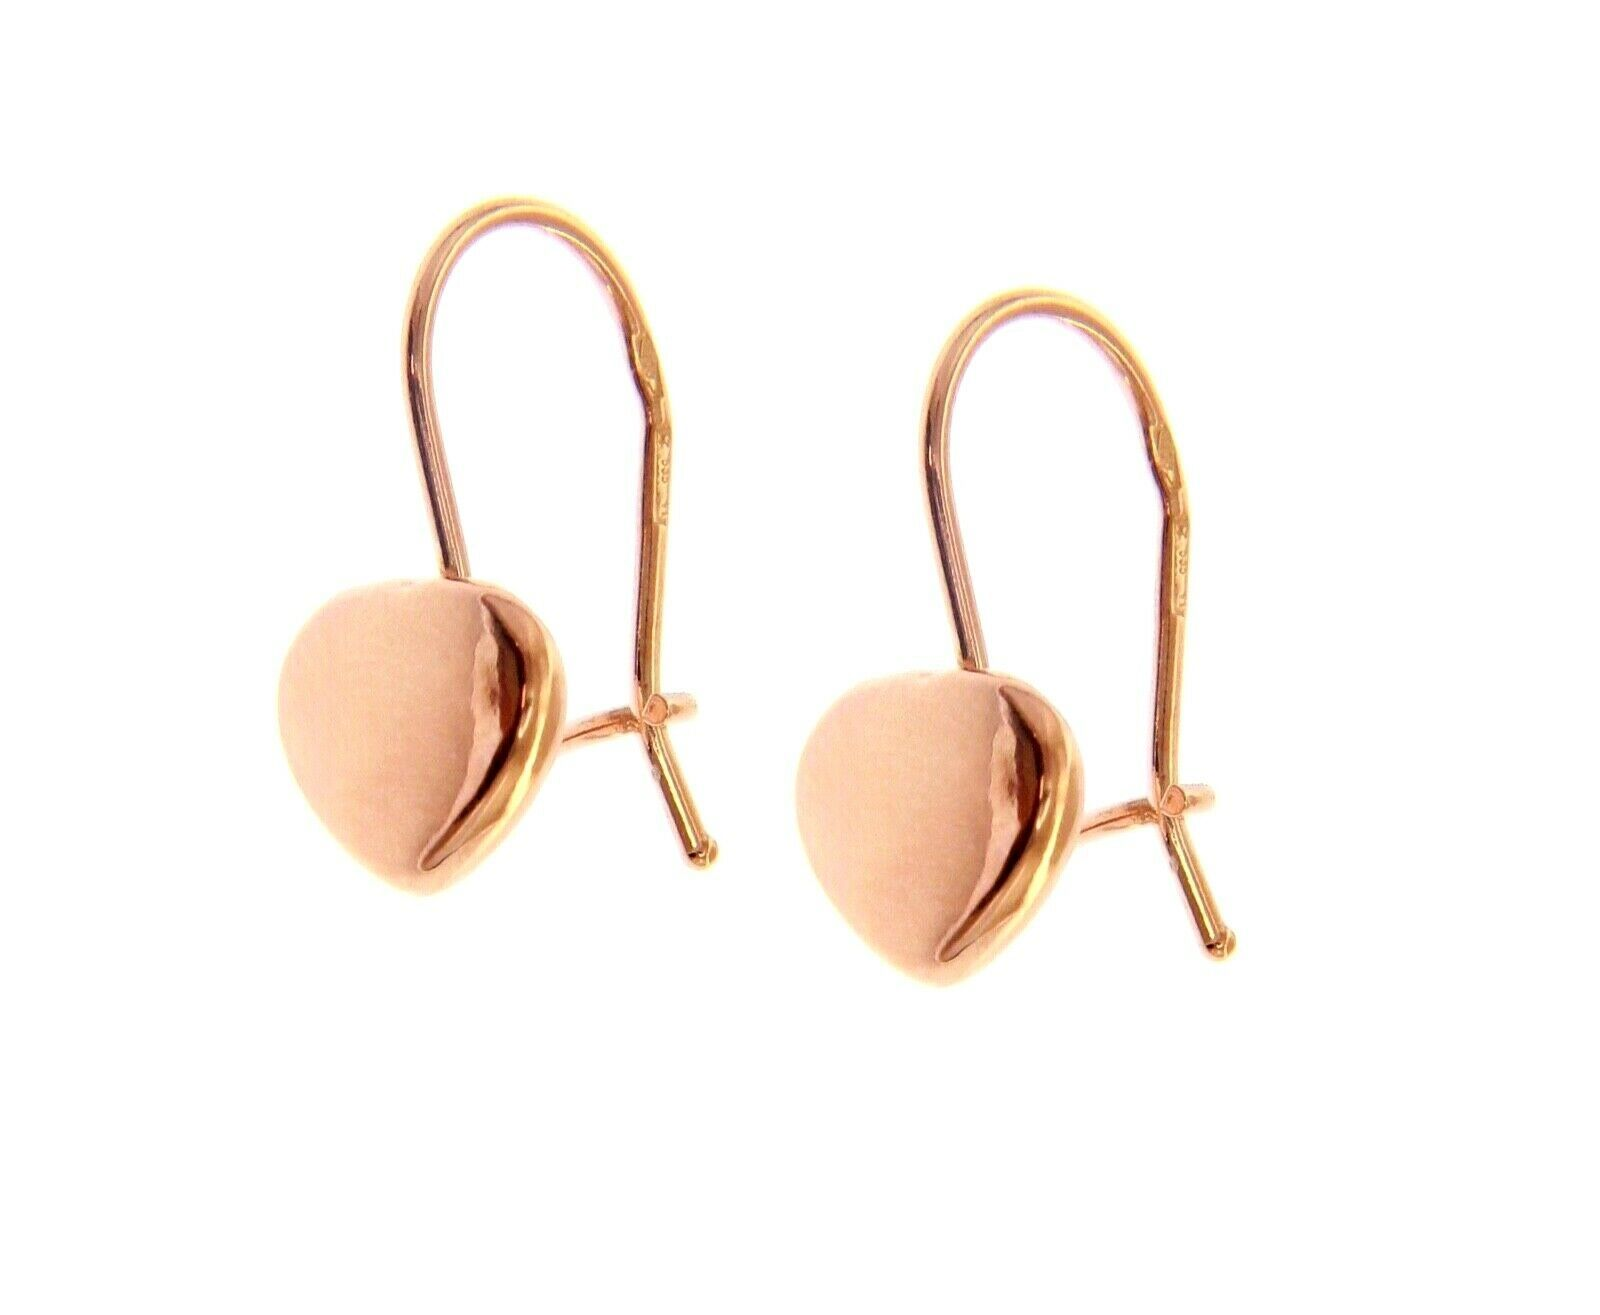 18K ROSE GOLD PENDANT HOOK ROUNDED 8mm HEARTS EARRINGS LENGTH 20mm 0.8""